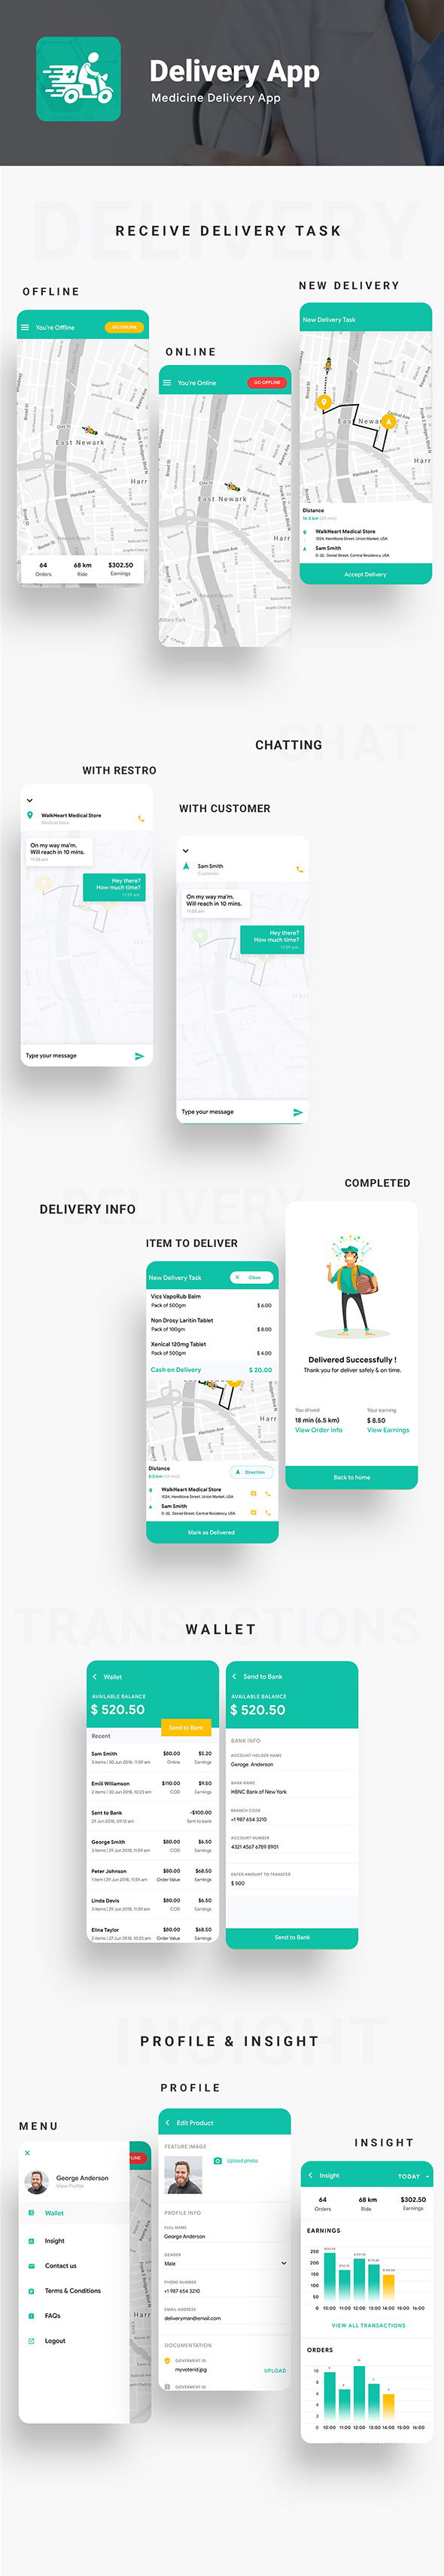 Nearby Doctor App | Doctor Appointment Booking App | 3 Apps| Android + iOS Template | IONIC 5 - 7